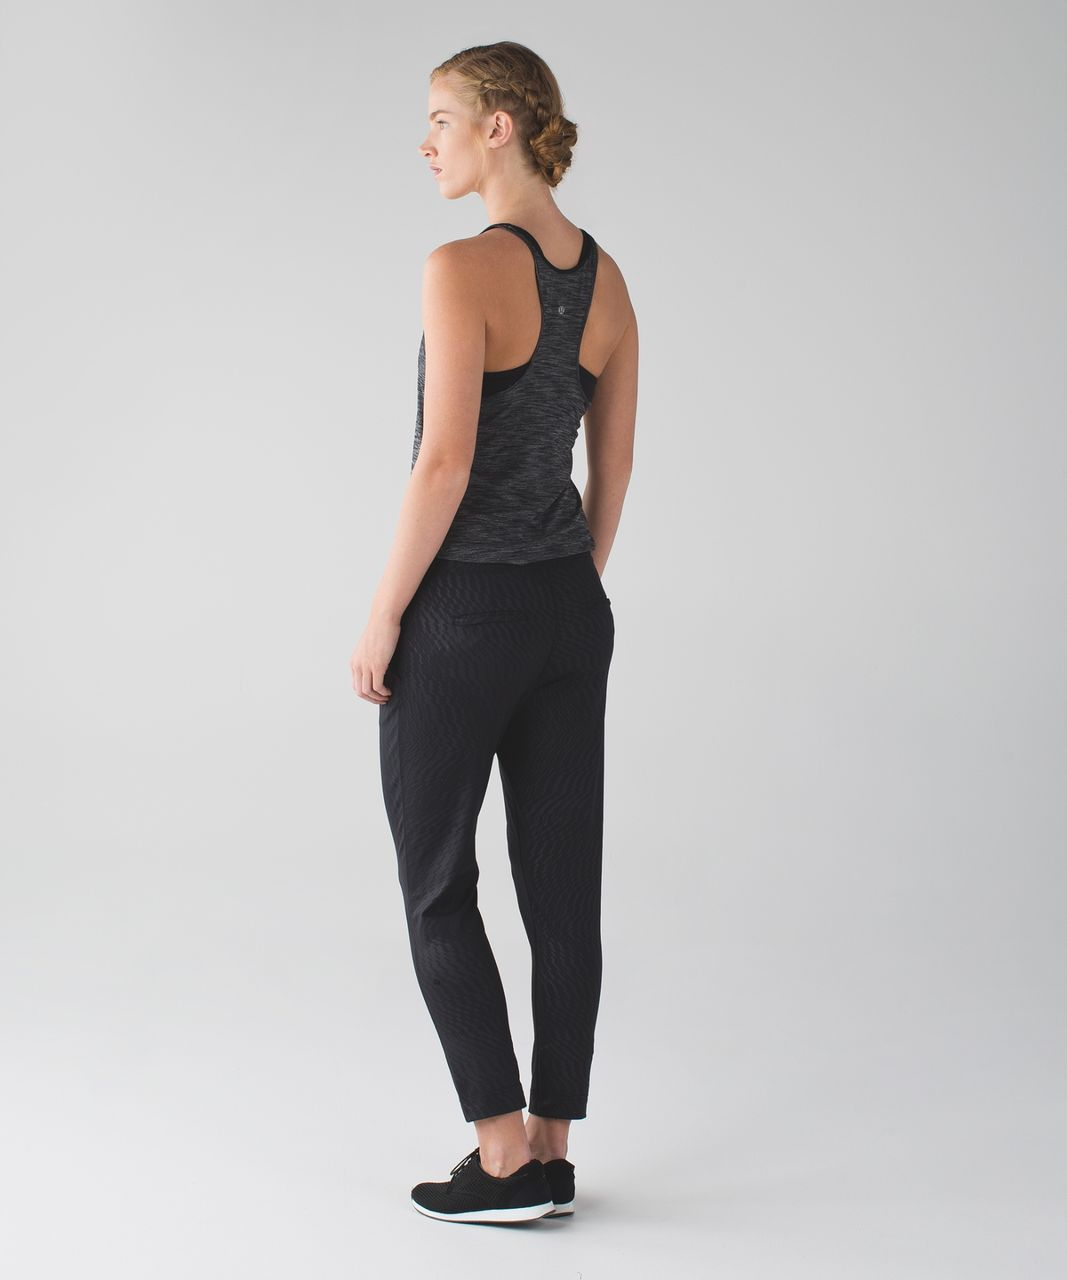 Lululemon Jet Crop (Slim) *Luxtreme - Shifted Horizon Embossed Black